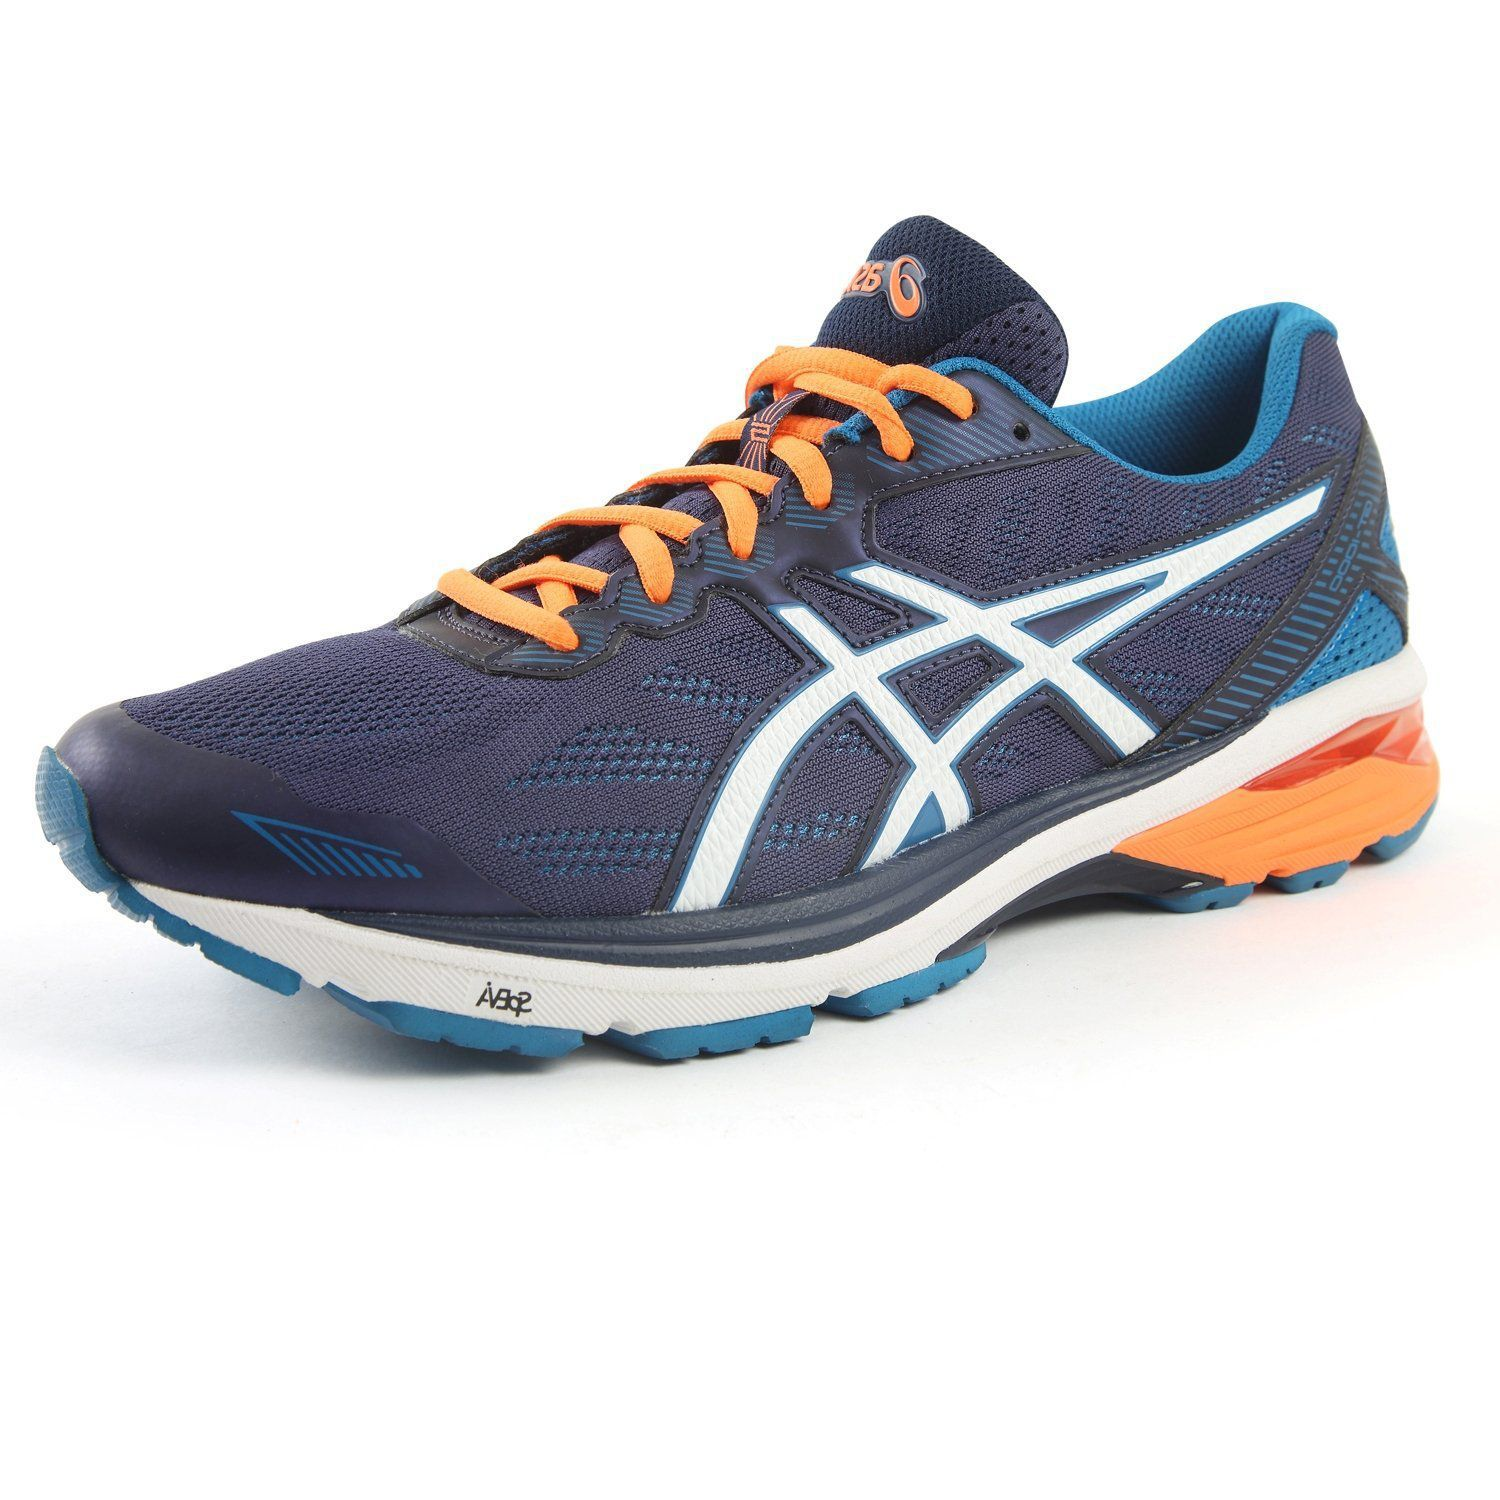 Asics Gt-1000 5 Blue Running Shoes - Buy Asics Gt-1000 5 Blue Running Shoes  Online at Best Prices in India on Snapdeal dc52bf3620